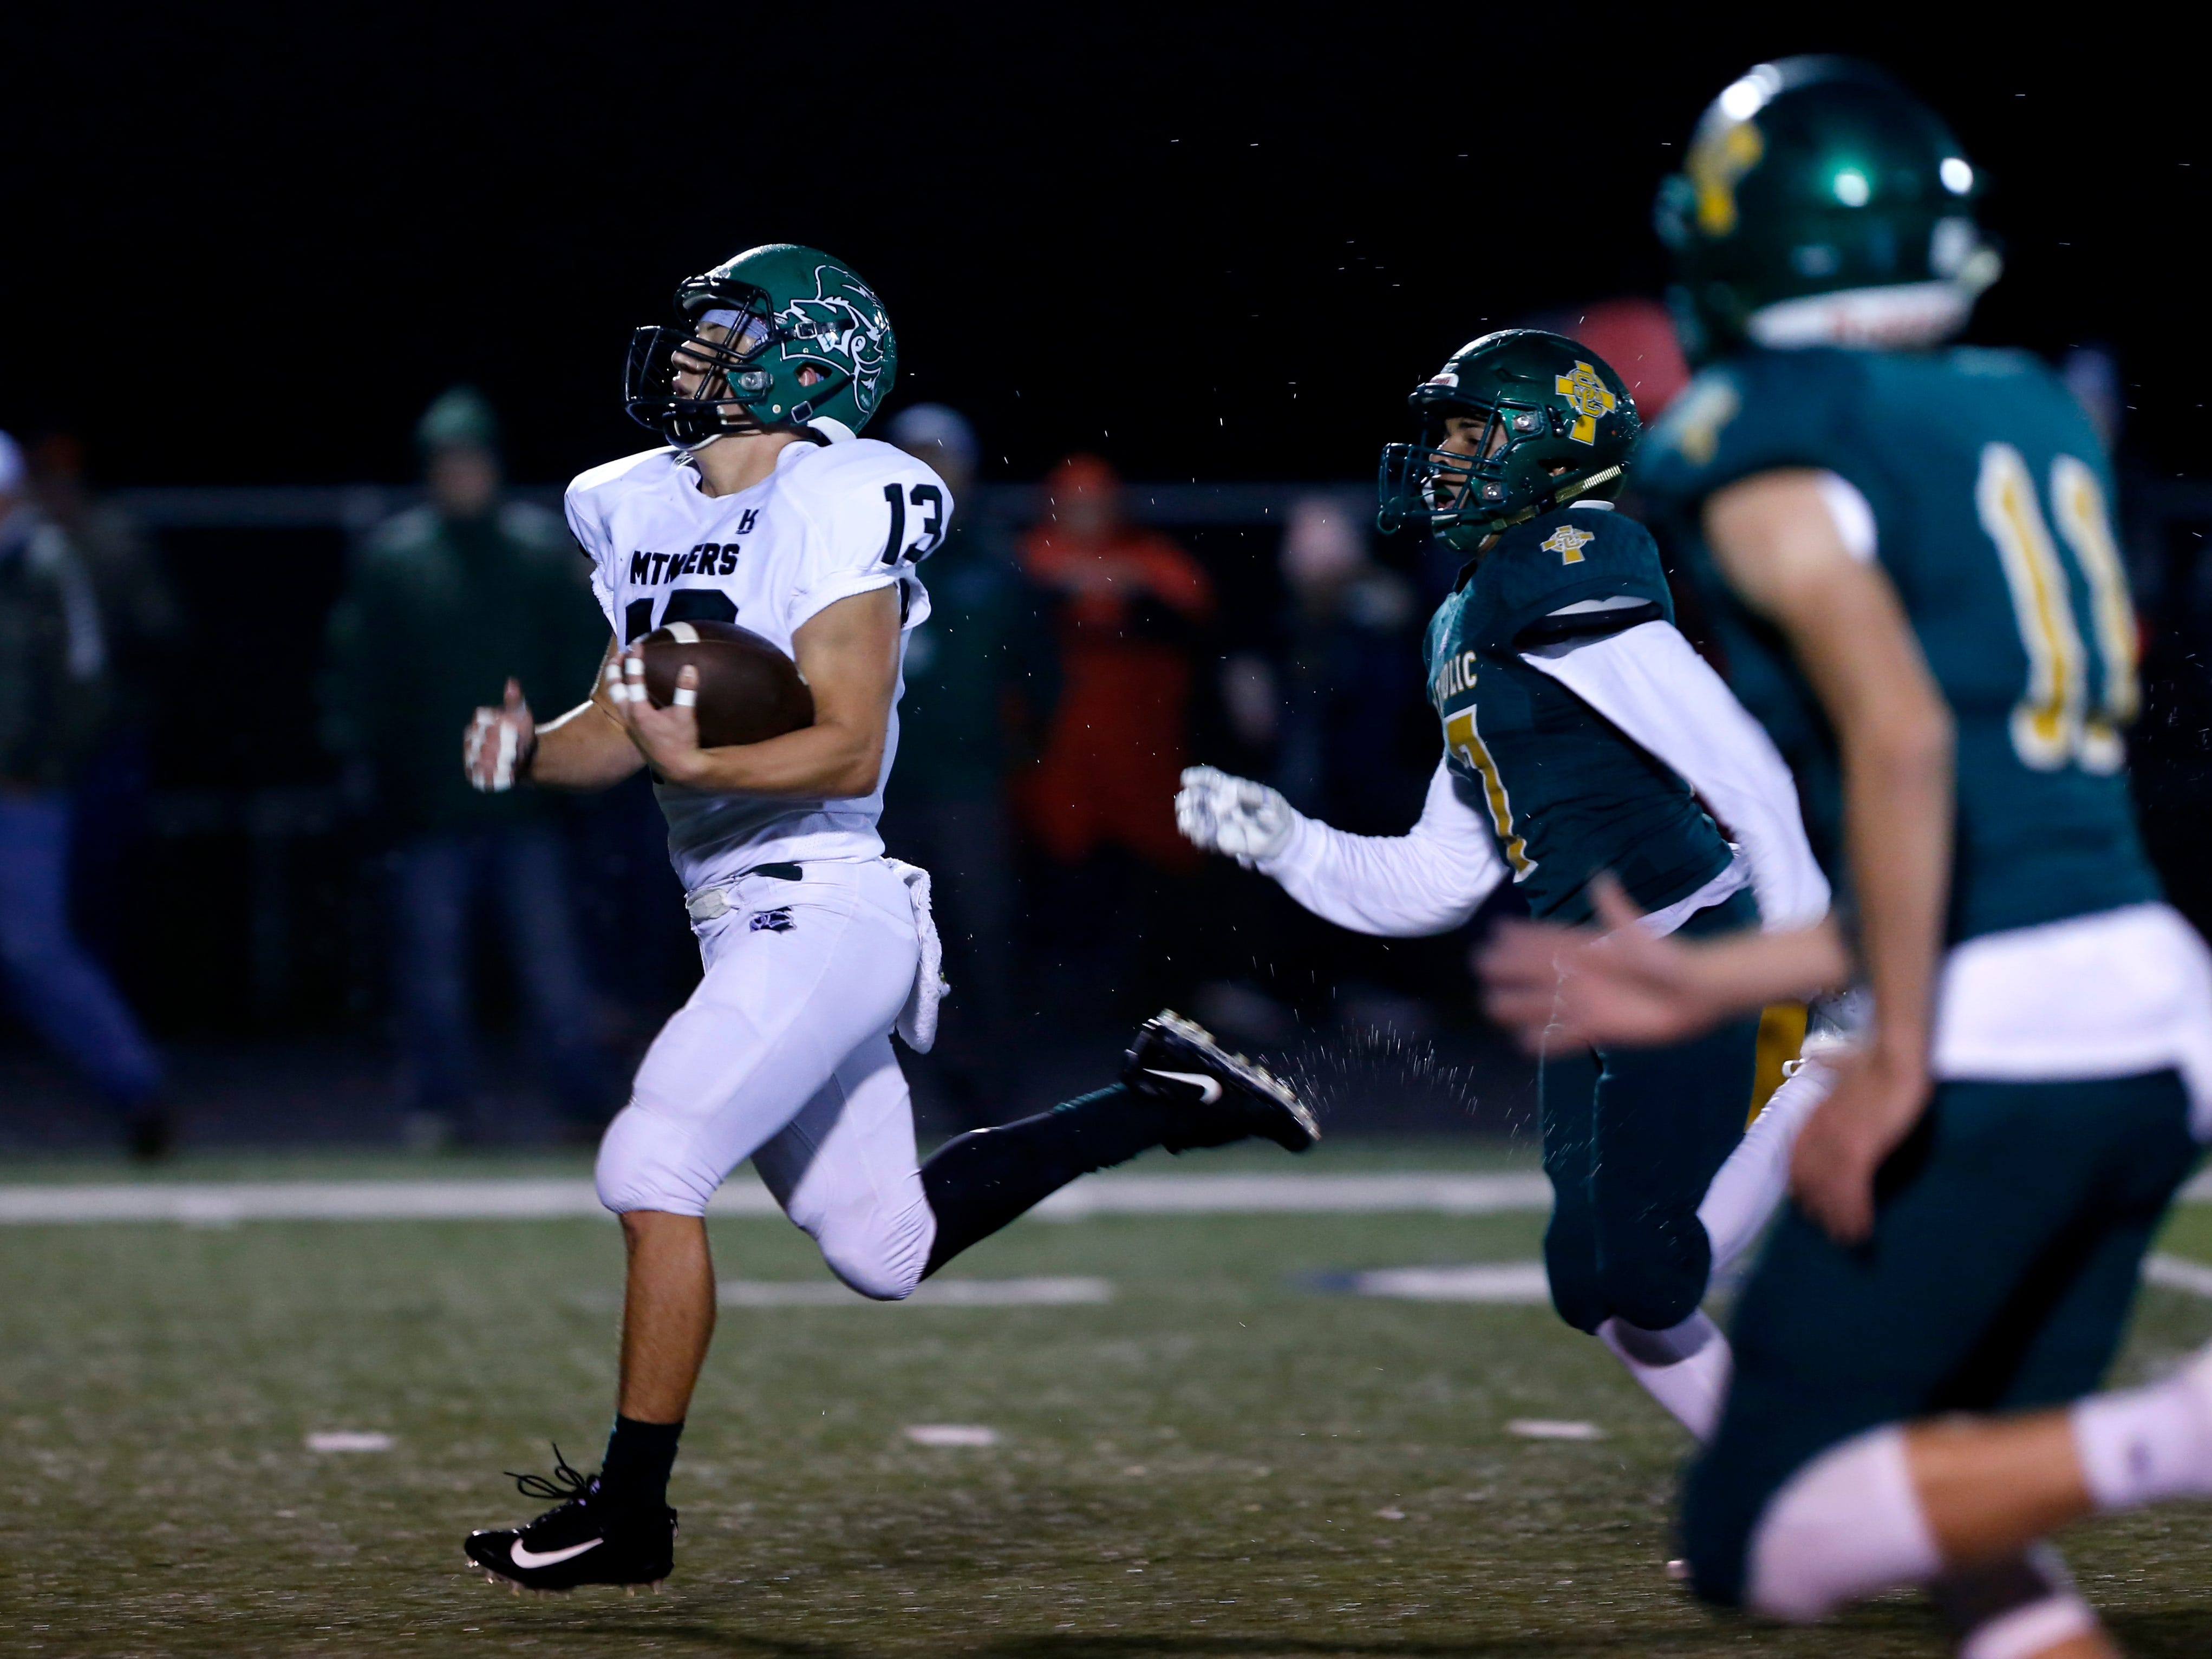 Mt. Vernons Carson Bow carries the ball downfield with Springfield Catholics Peyton James in pursuit during a game at Catholic on Friday, Oct. 12, 2018.